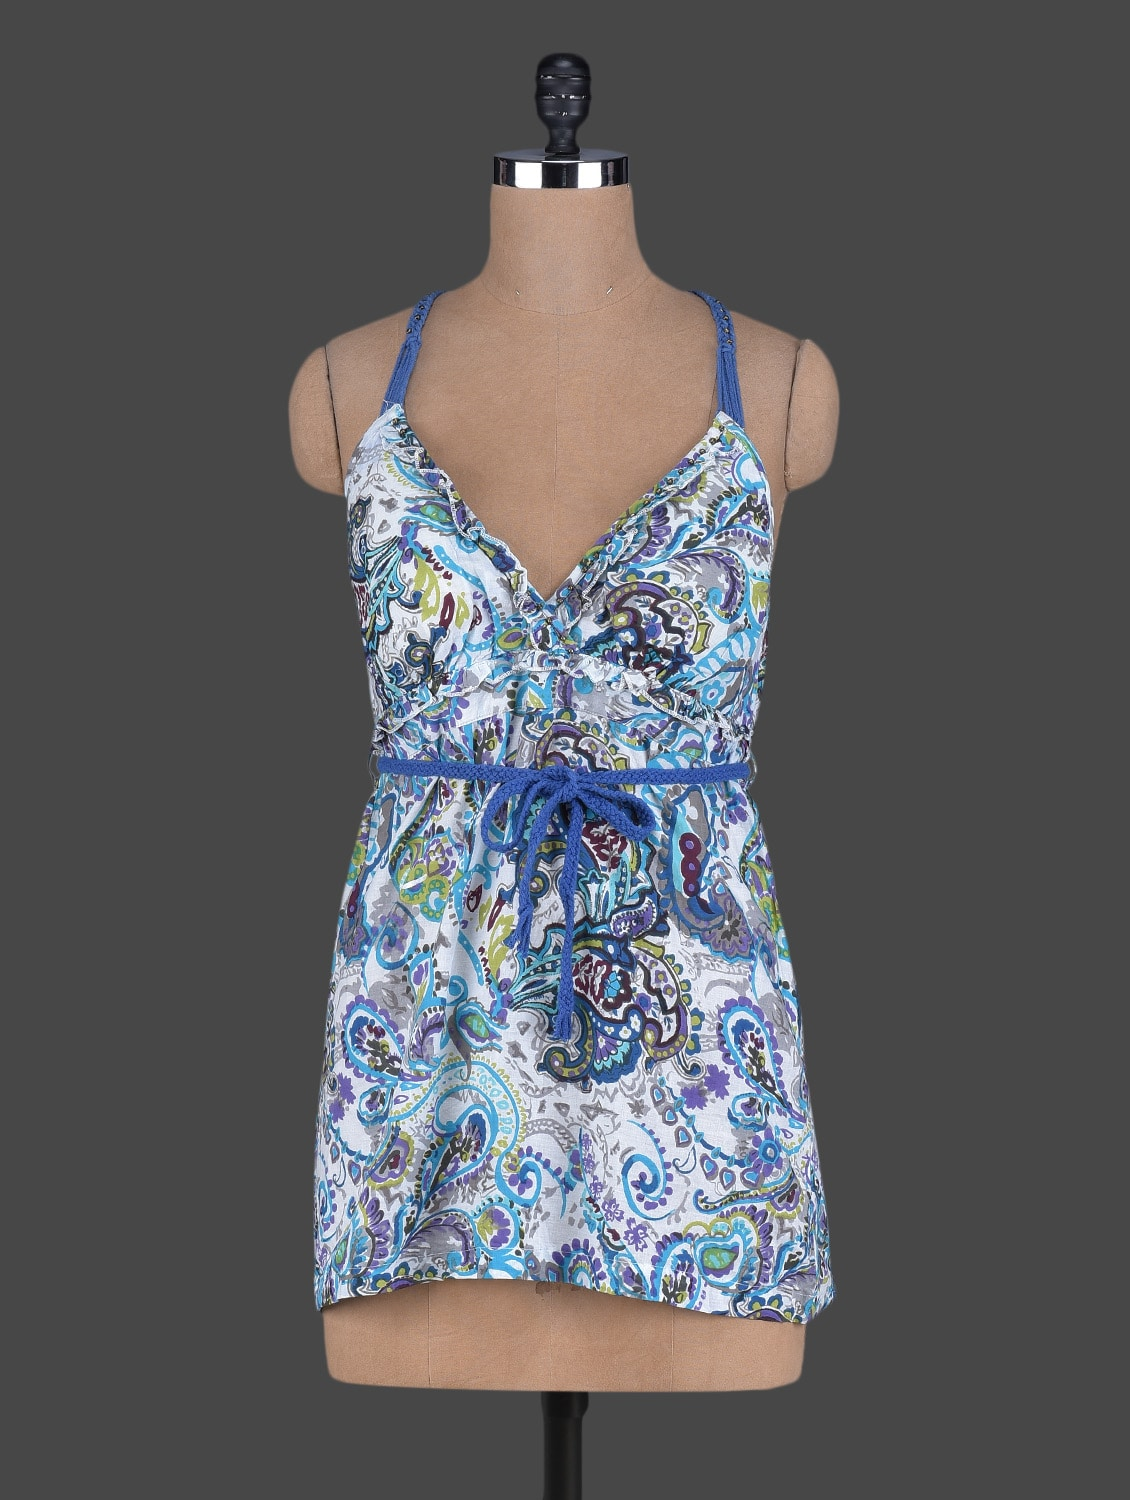 Paisley Print Camisole Neck Cotton Top - Holidae